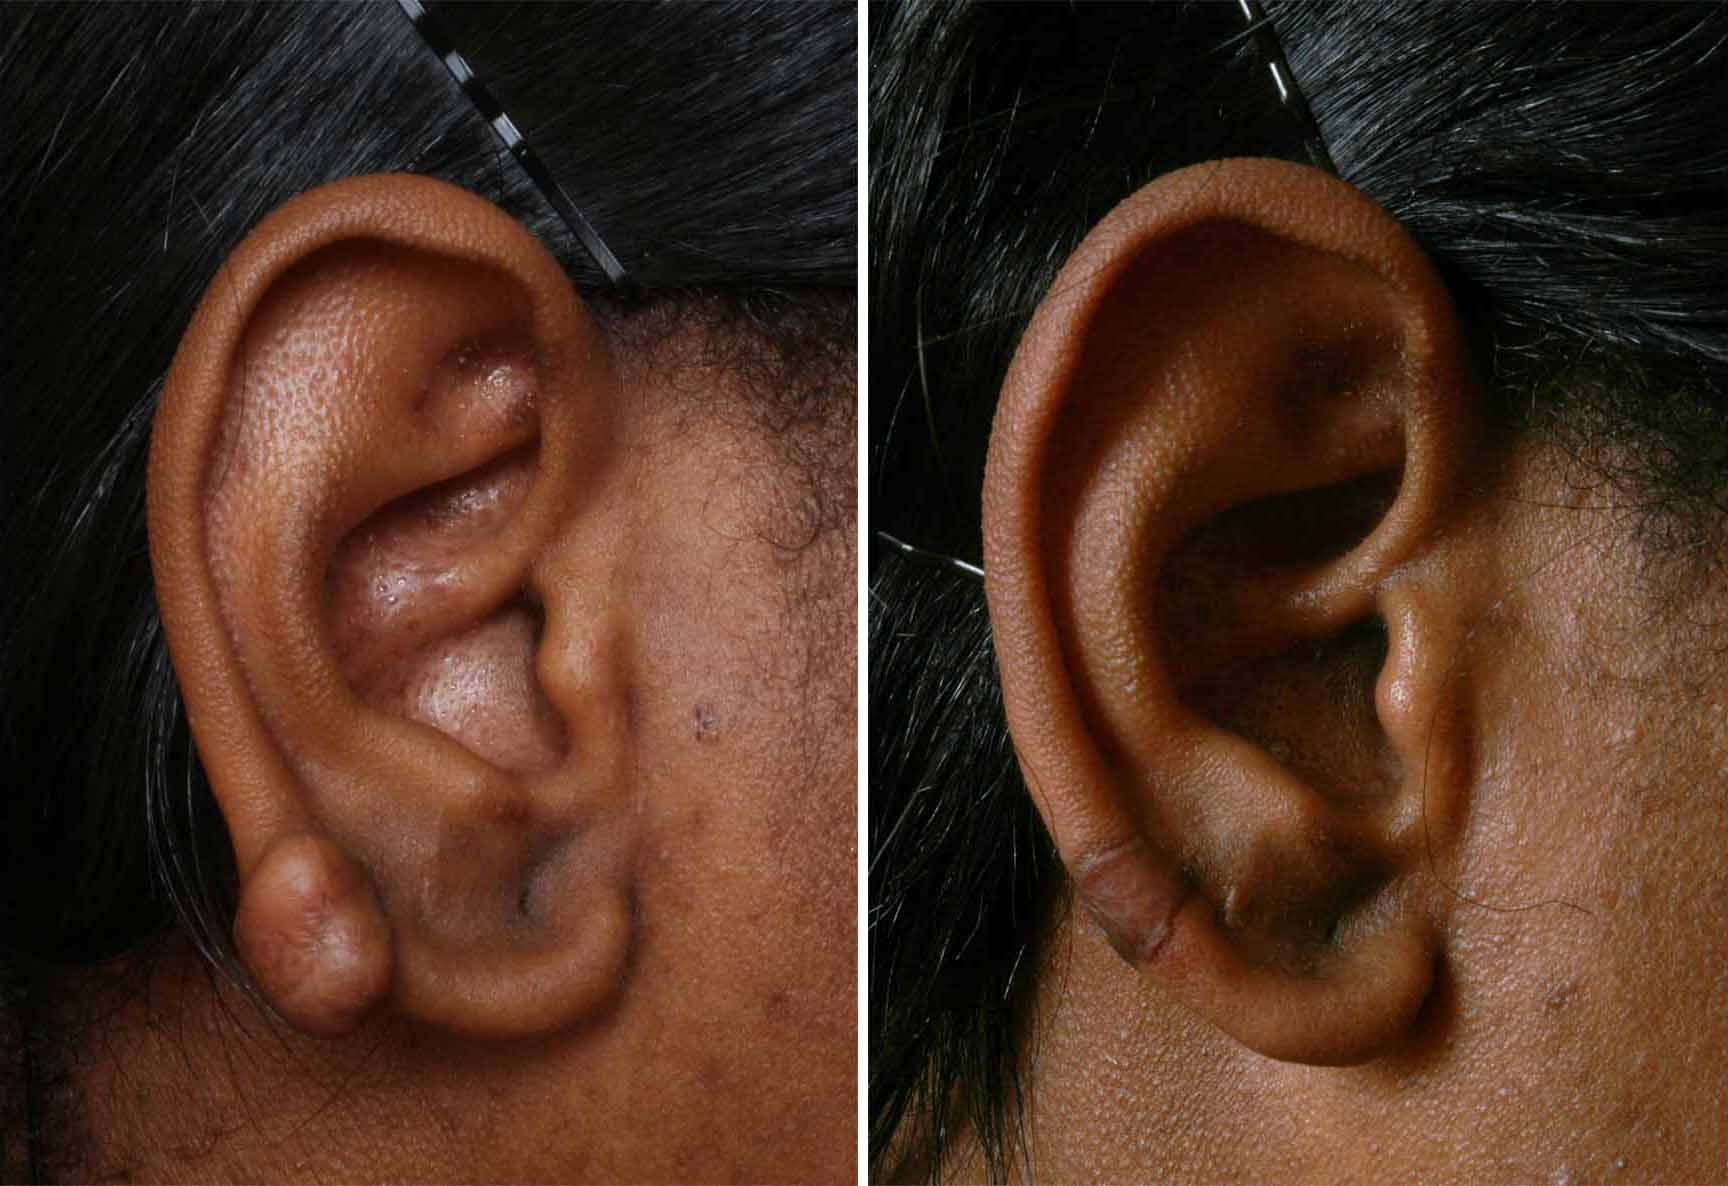 Keloid Treatment With CryoShape Is Now Available in